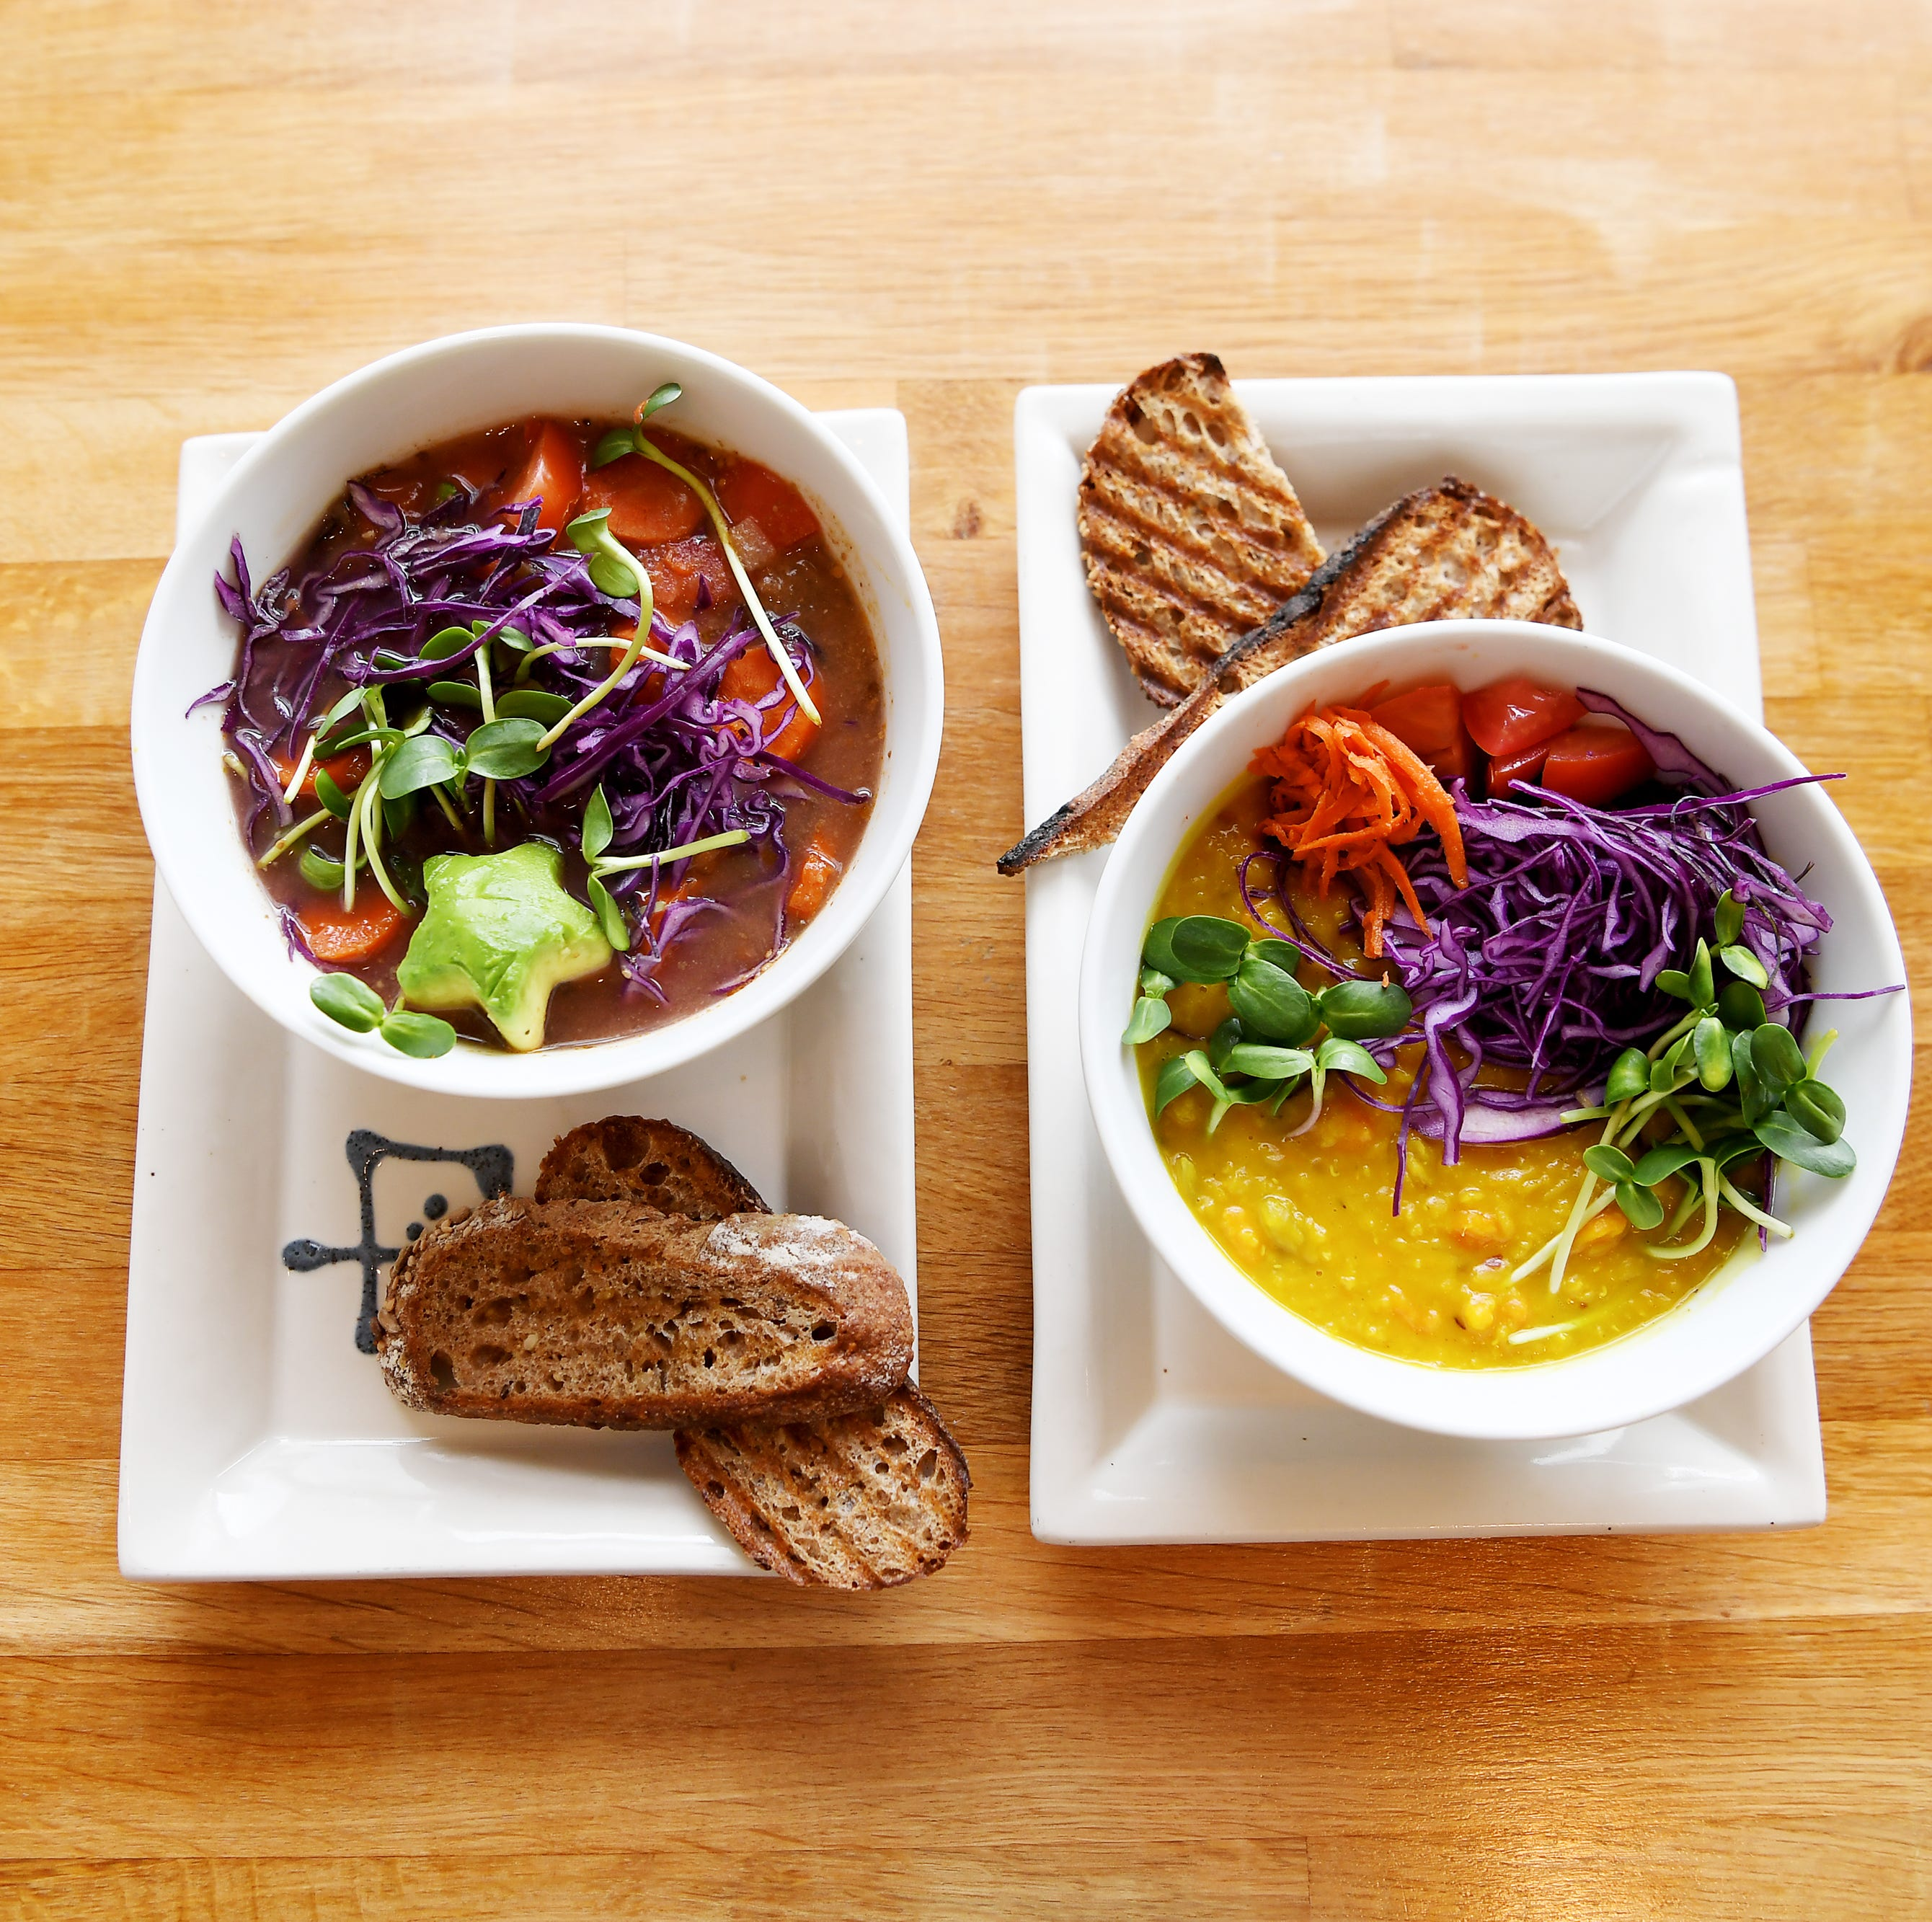 To your health: Try these local restaurants as an antidote to the excesses of the holidays